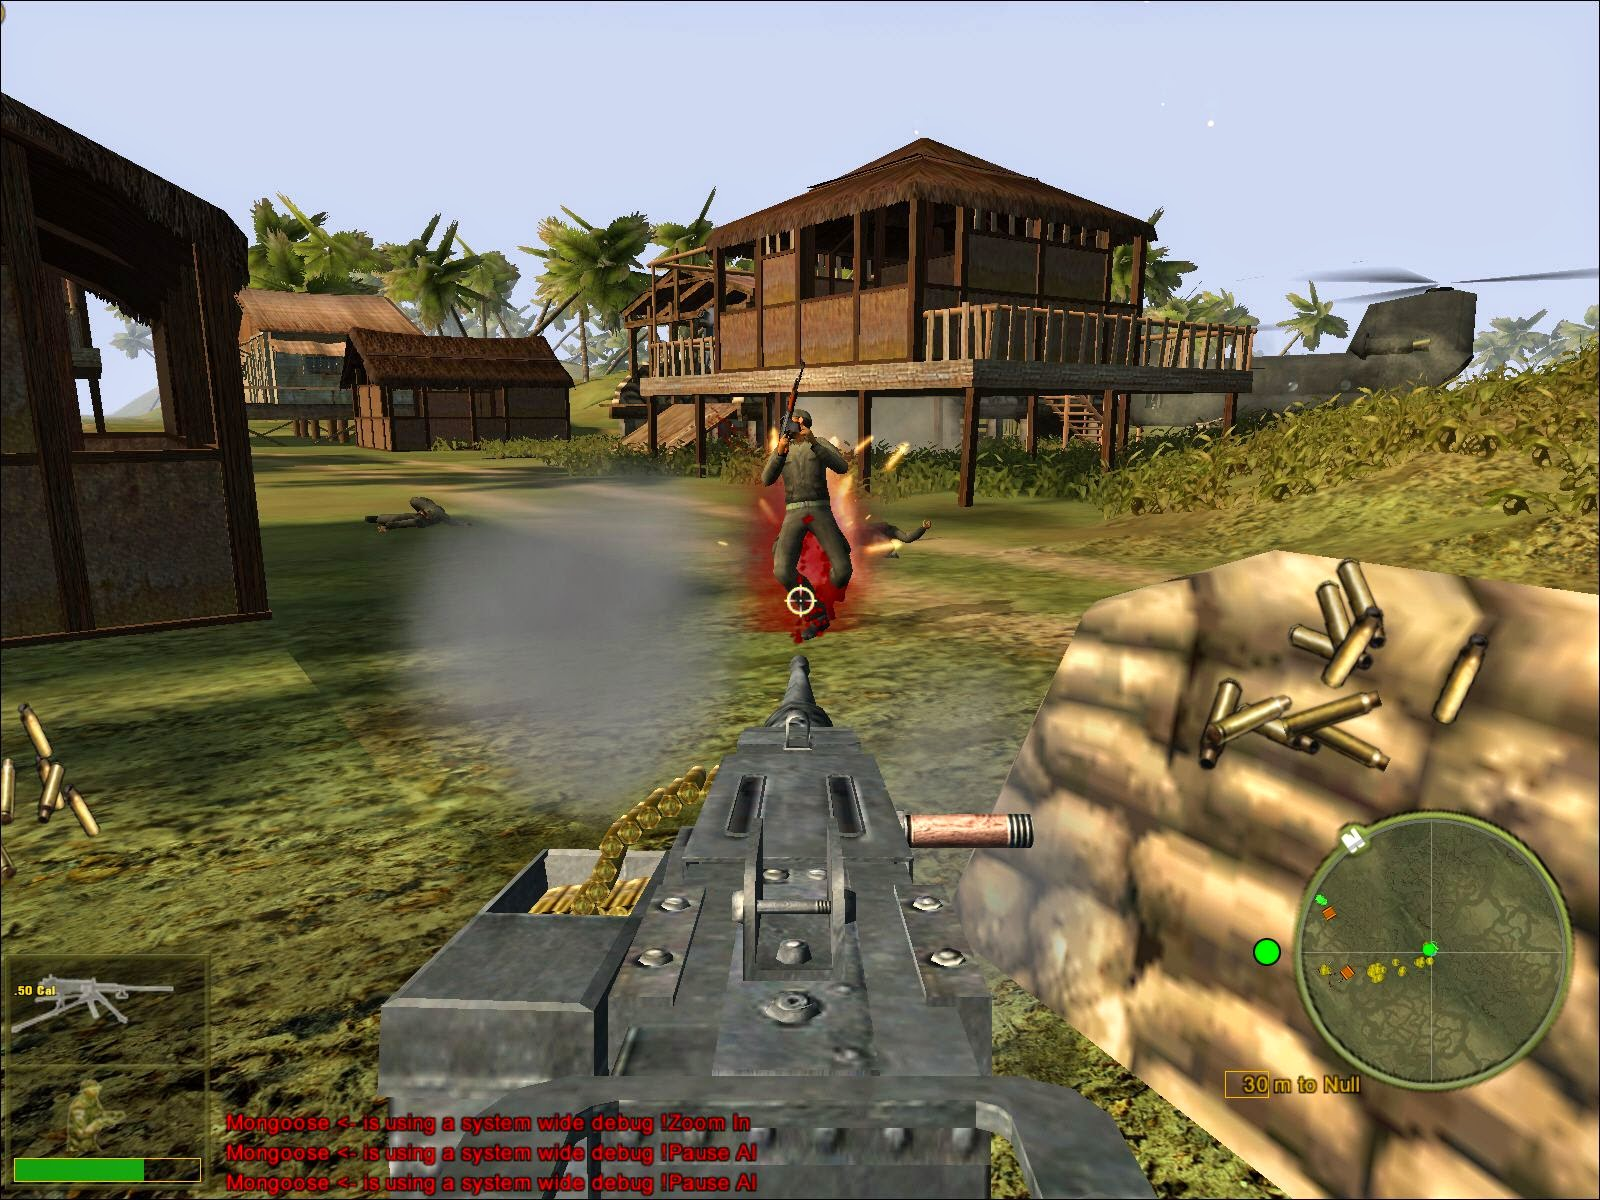 Joint operations: escalation full game free pc, download, play.